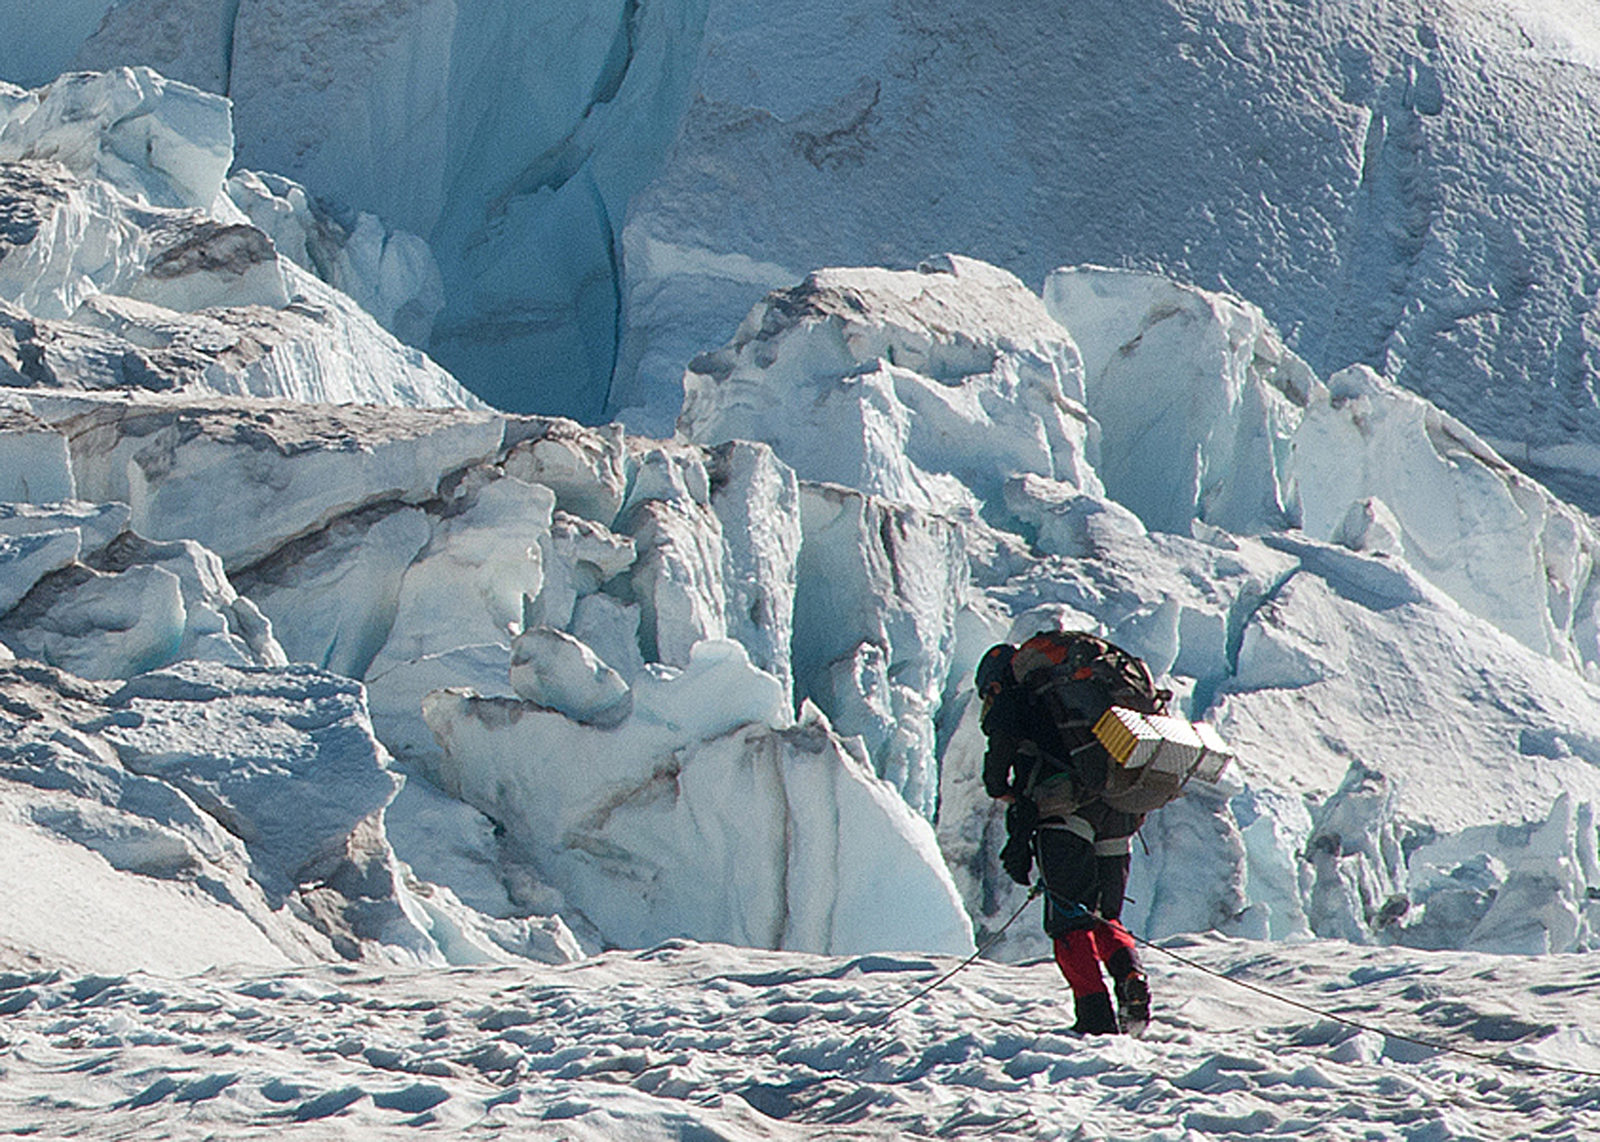 Cllmbing on the Emmons Glacier.